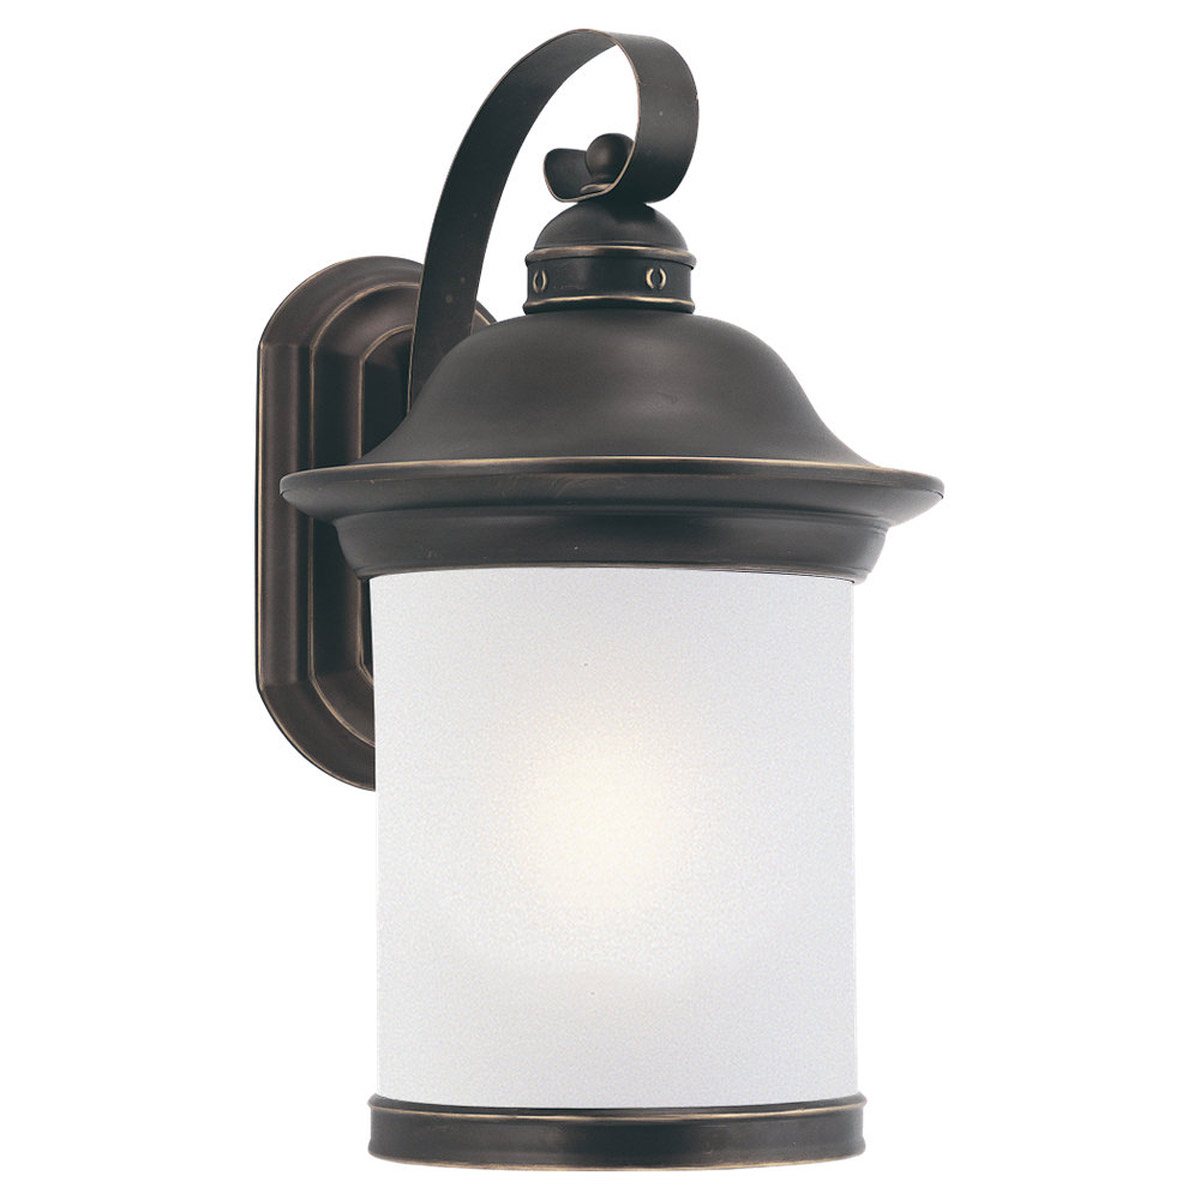 Sea Gull Lighting Hermitage 1 Light Outdoor Wall Lantern in Antique Bronze 89192BLE-71 photo